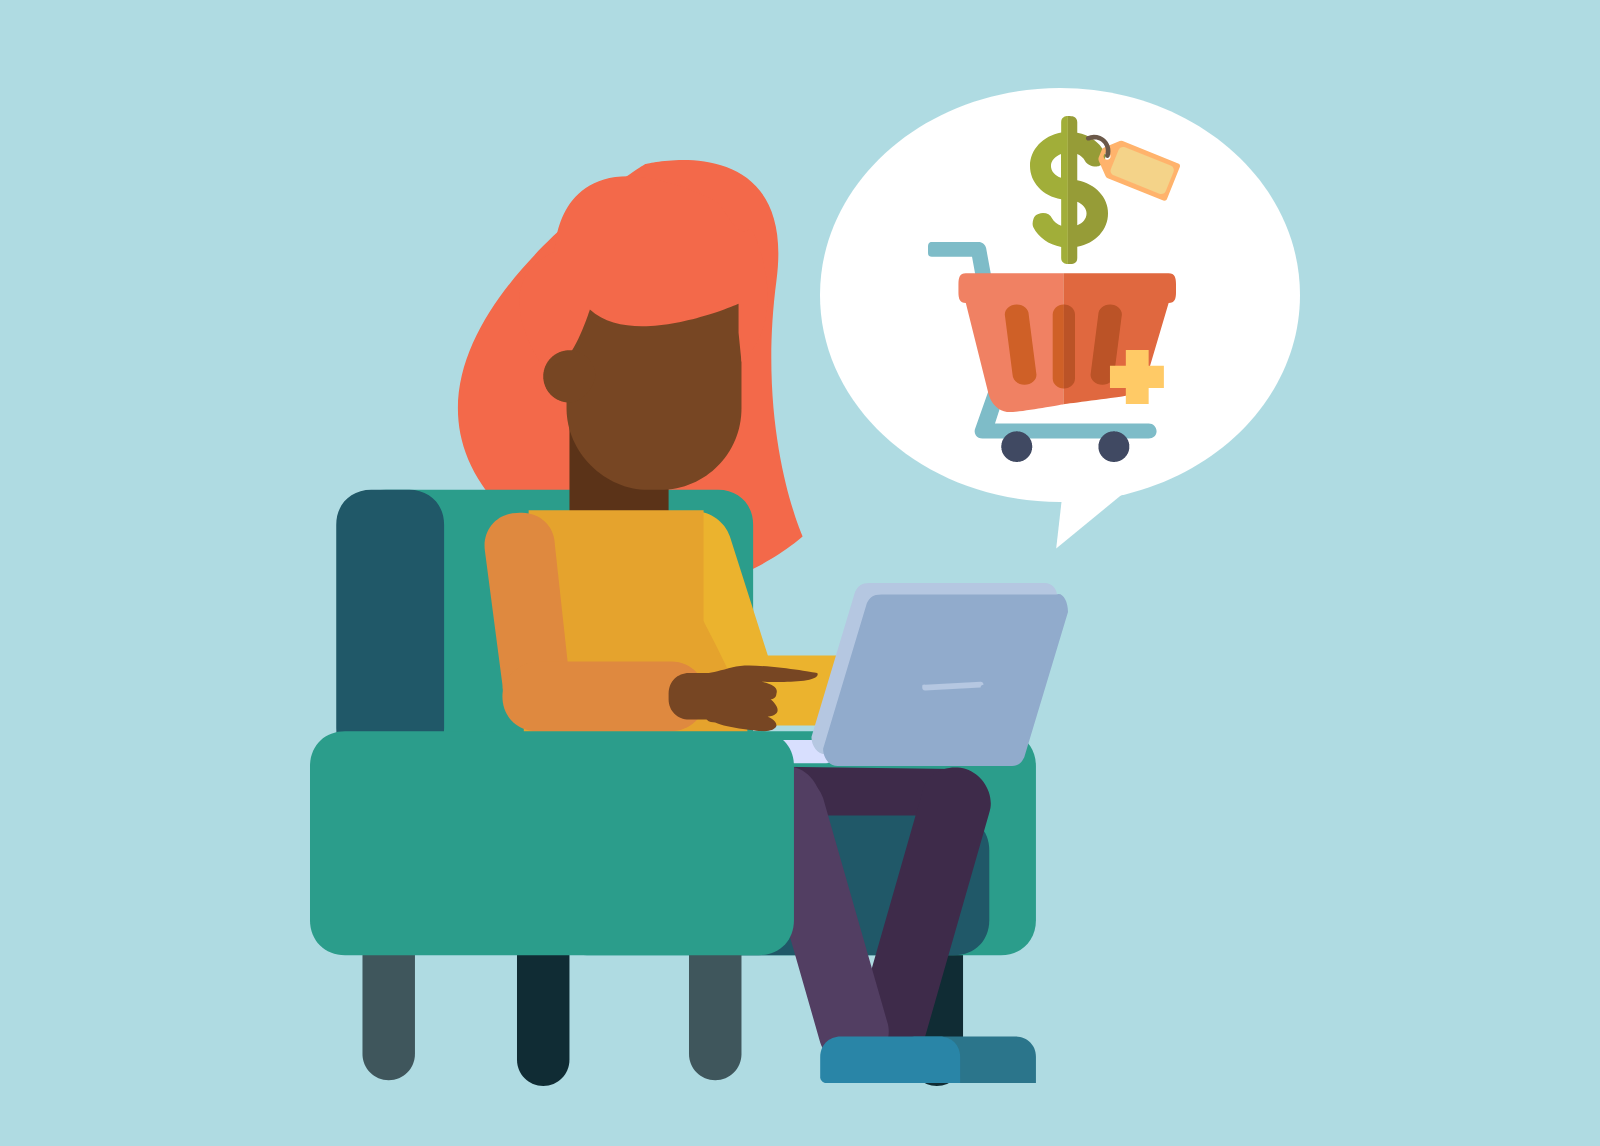 Online retailer tactics and impulse buying: Consumers welcome tools to avoid it